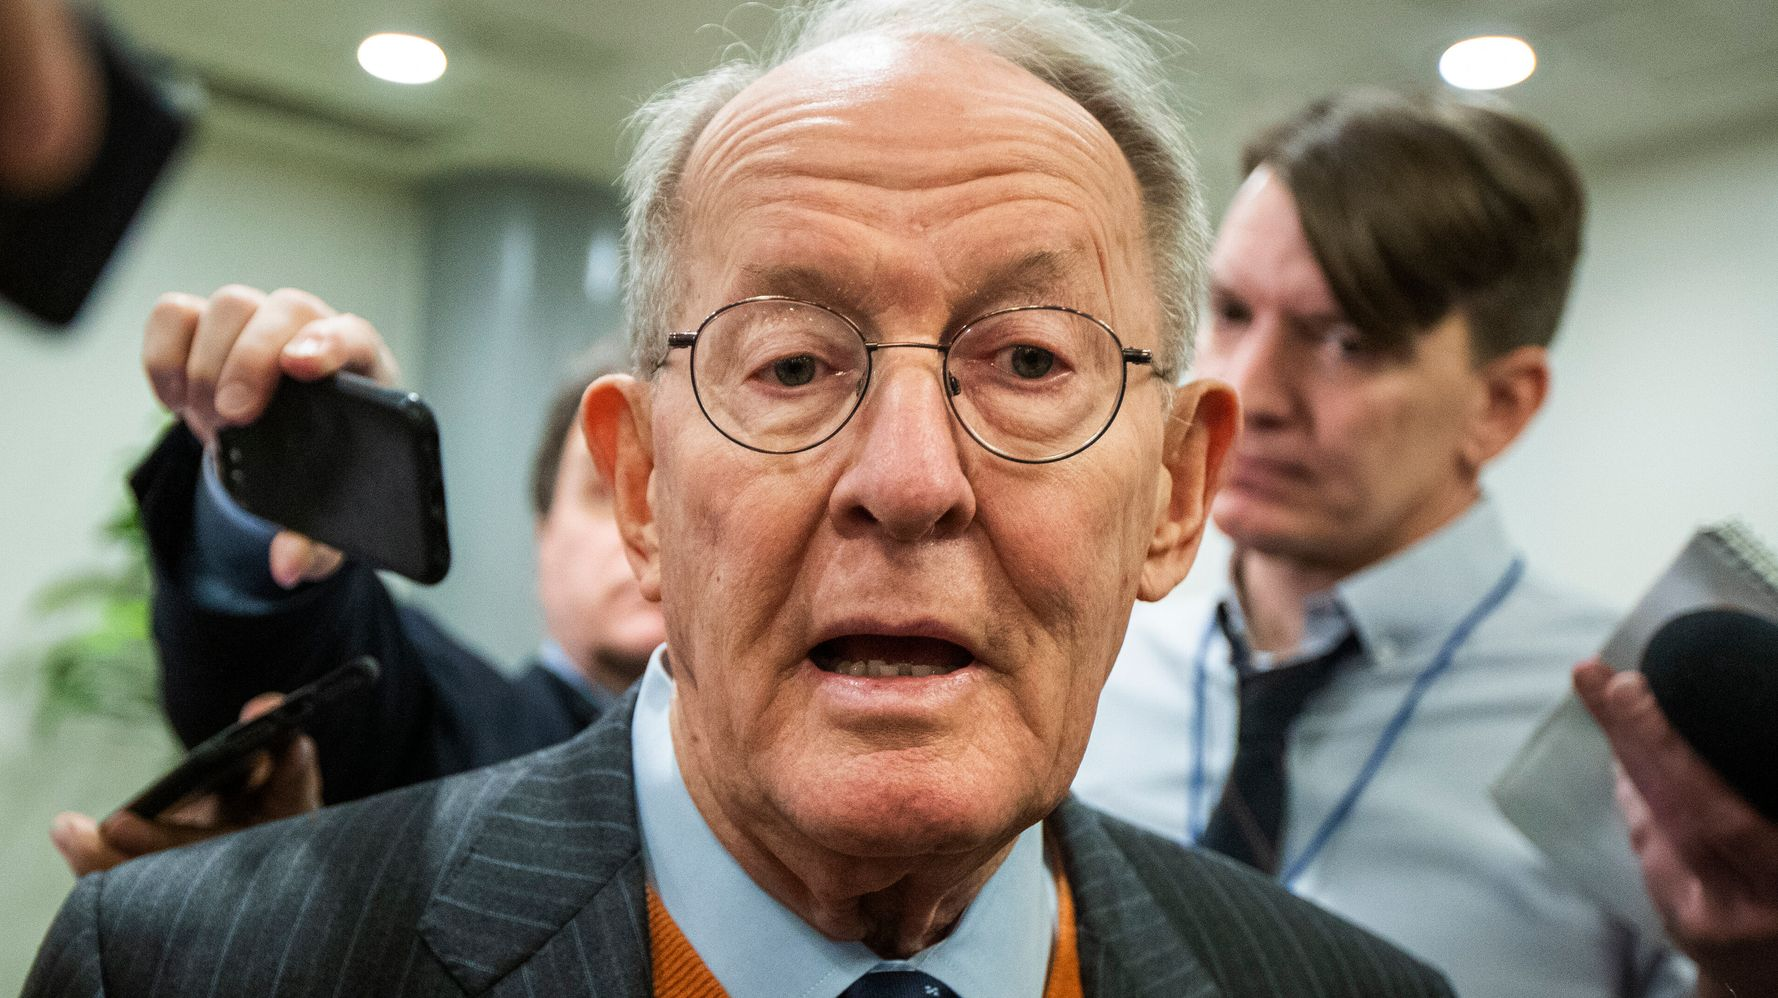 Westlake Legal Group 5e33c74c240000b60d64ede7 Twitter Users Shred 'Coward' Lamar Alexander After Vote Reveal